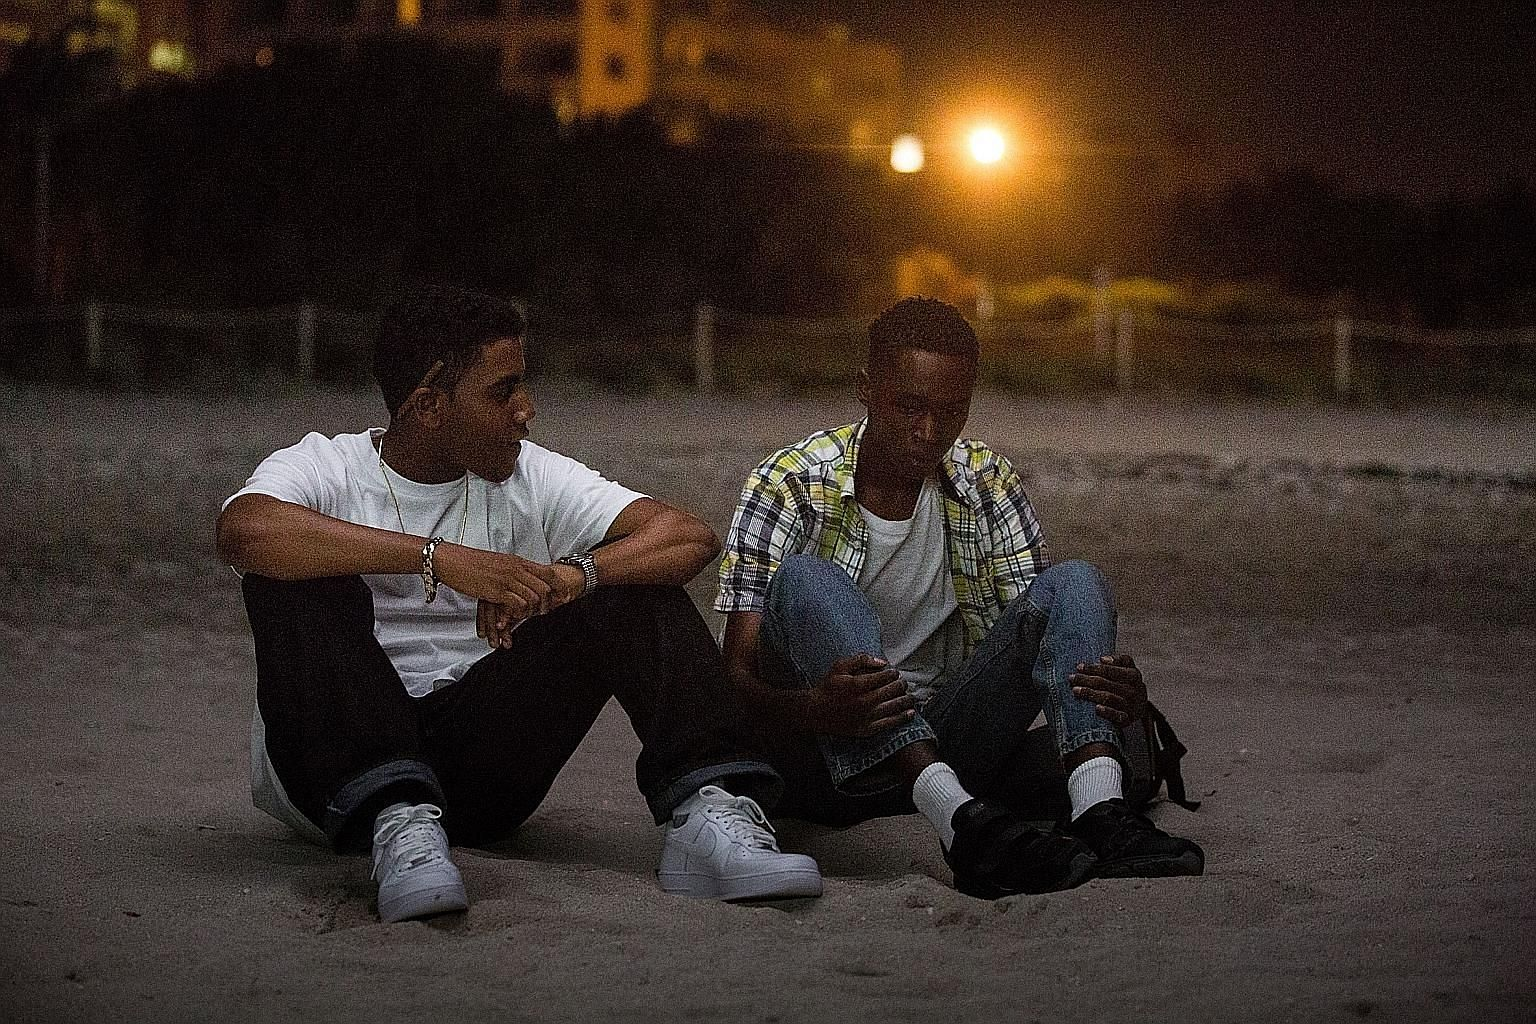 Jharrel Jerome (above left) and Ashton Sanders star in Moonlight, while Scoot McNairy plays an air traffic controller under investigation for a collision in Aftermath.